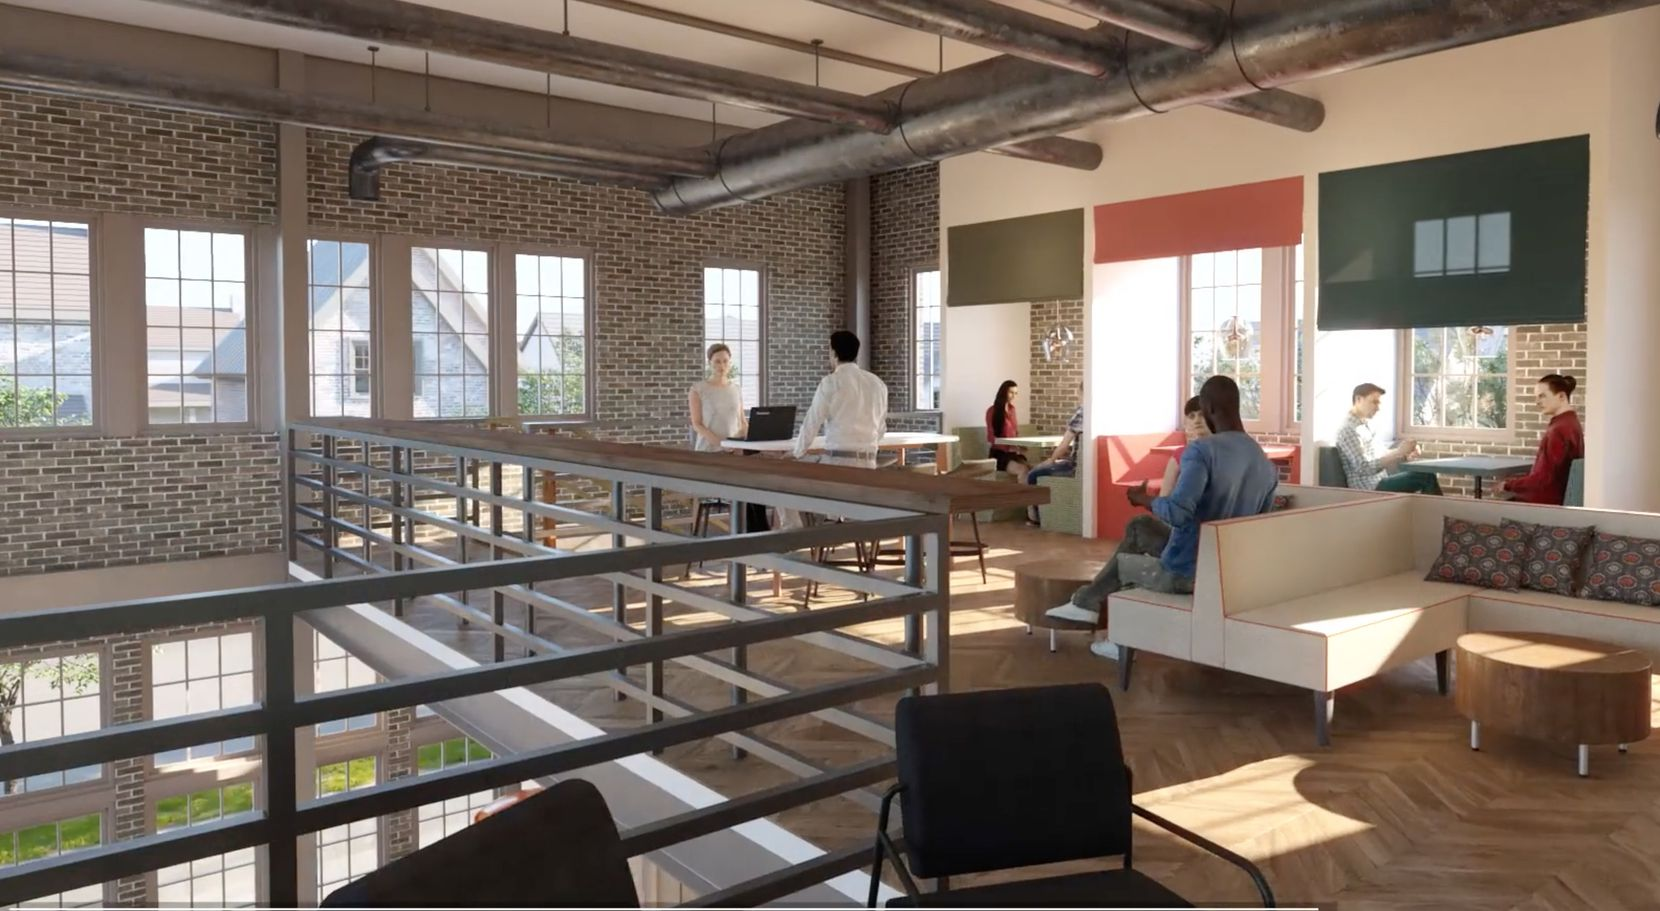 The first phase of Pecan Square will include a coworking office center.